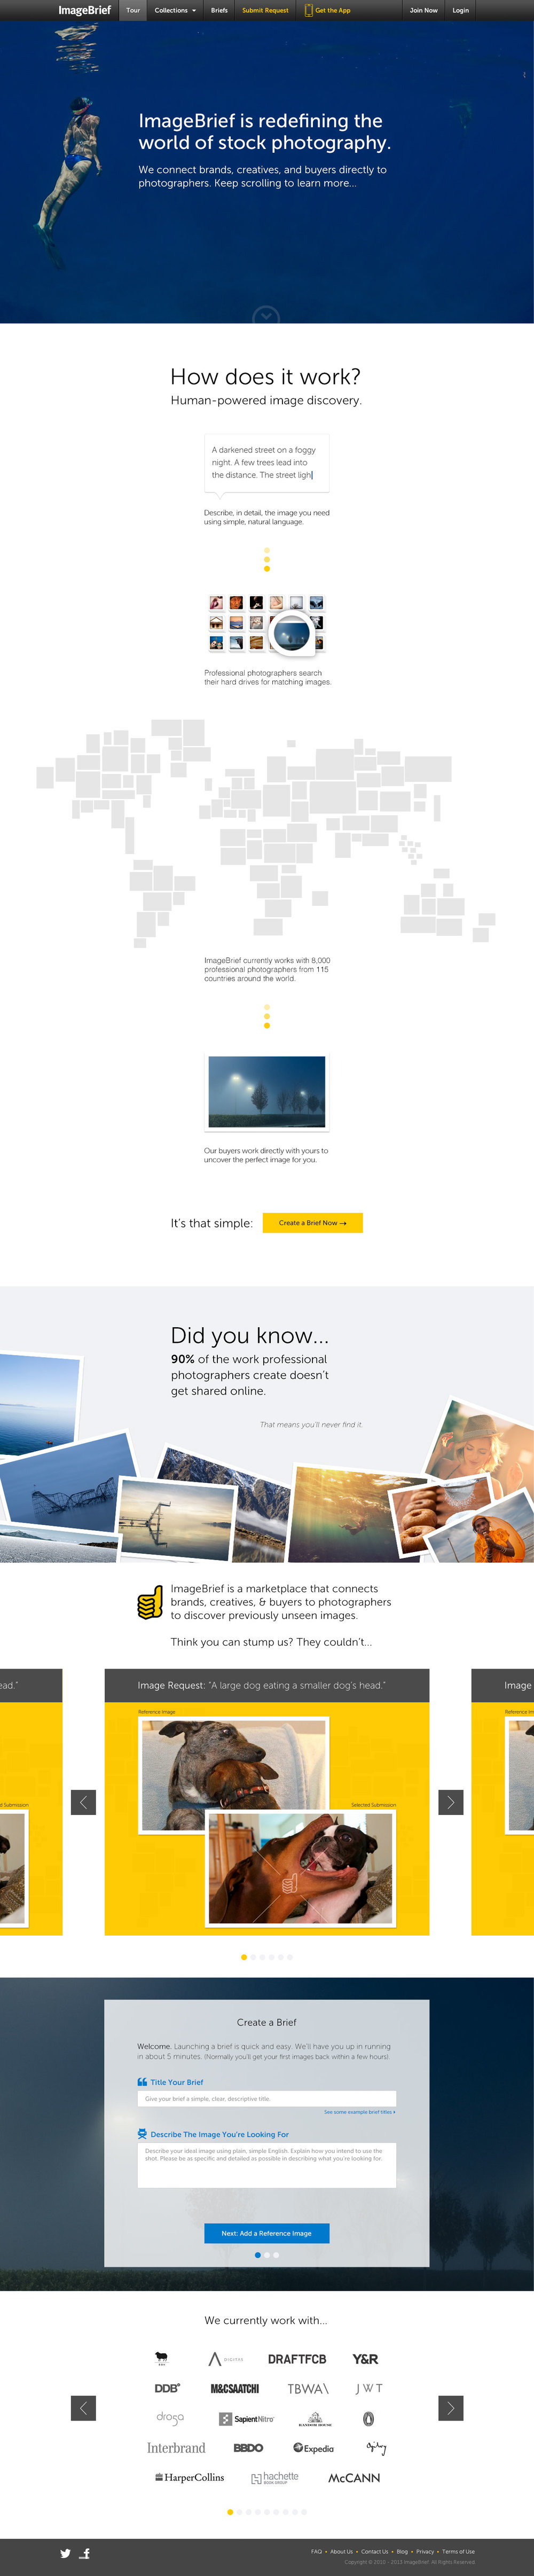 The Image Buyer Landing Page